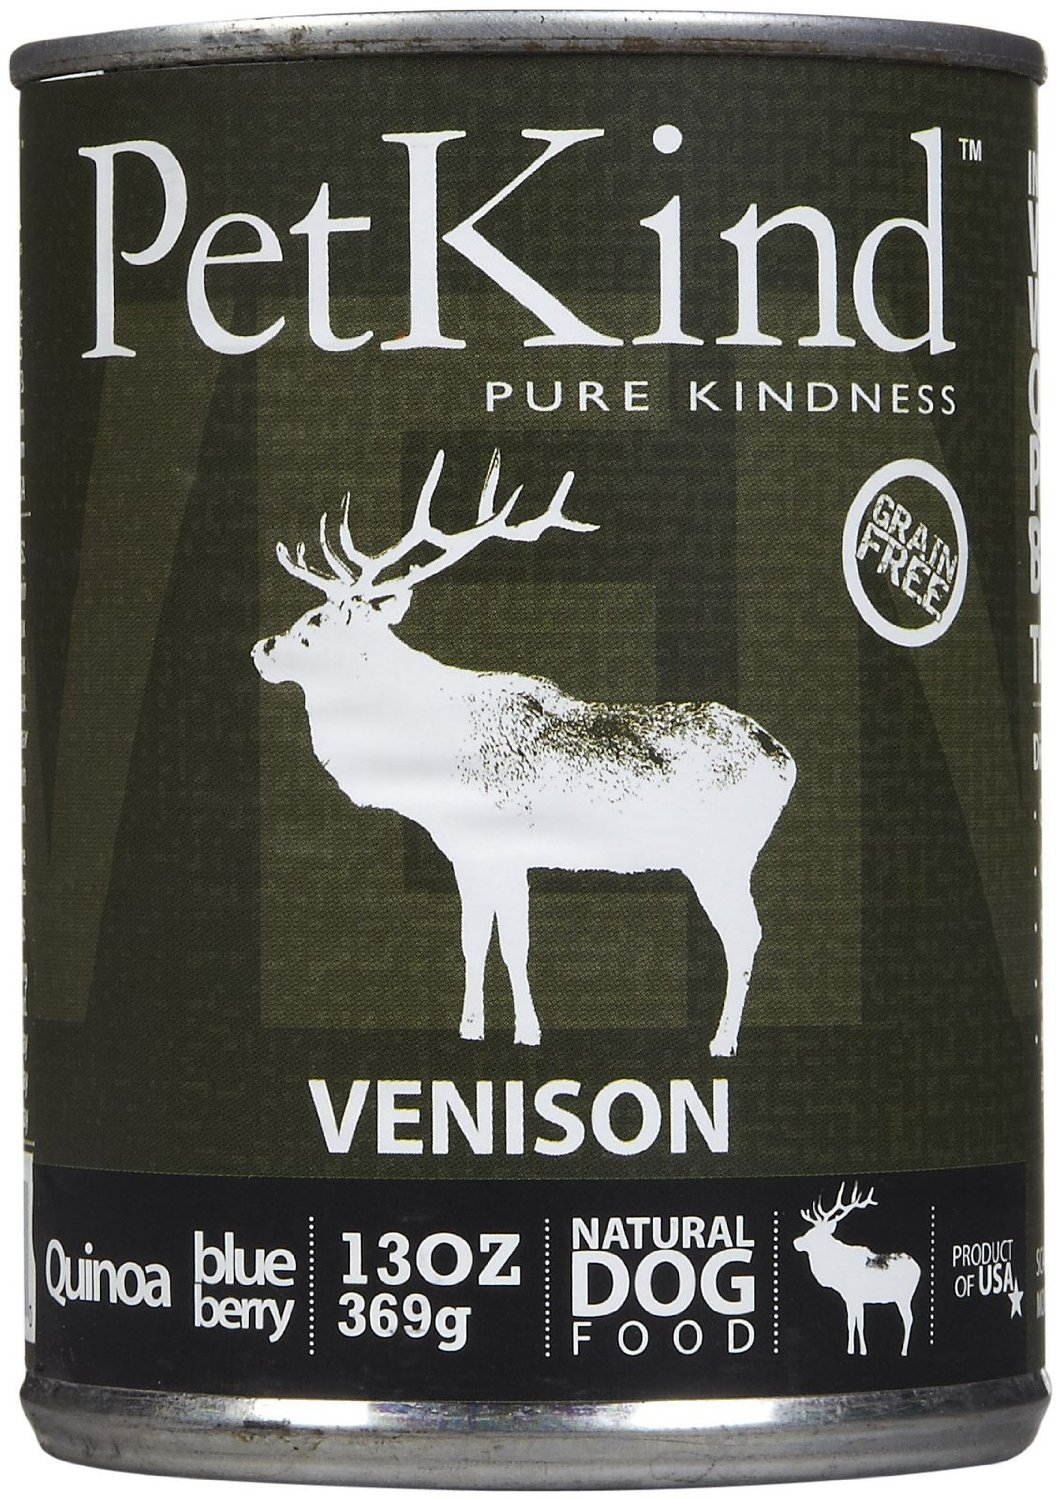 Best Selling PetKind Dog Food